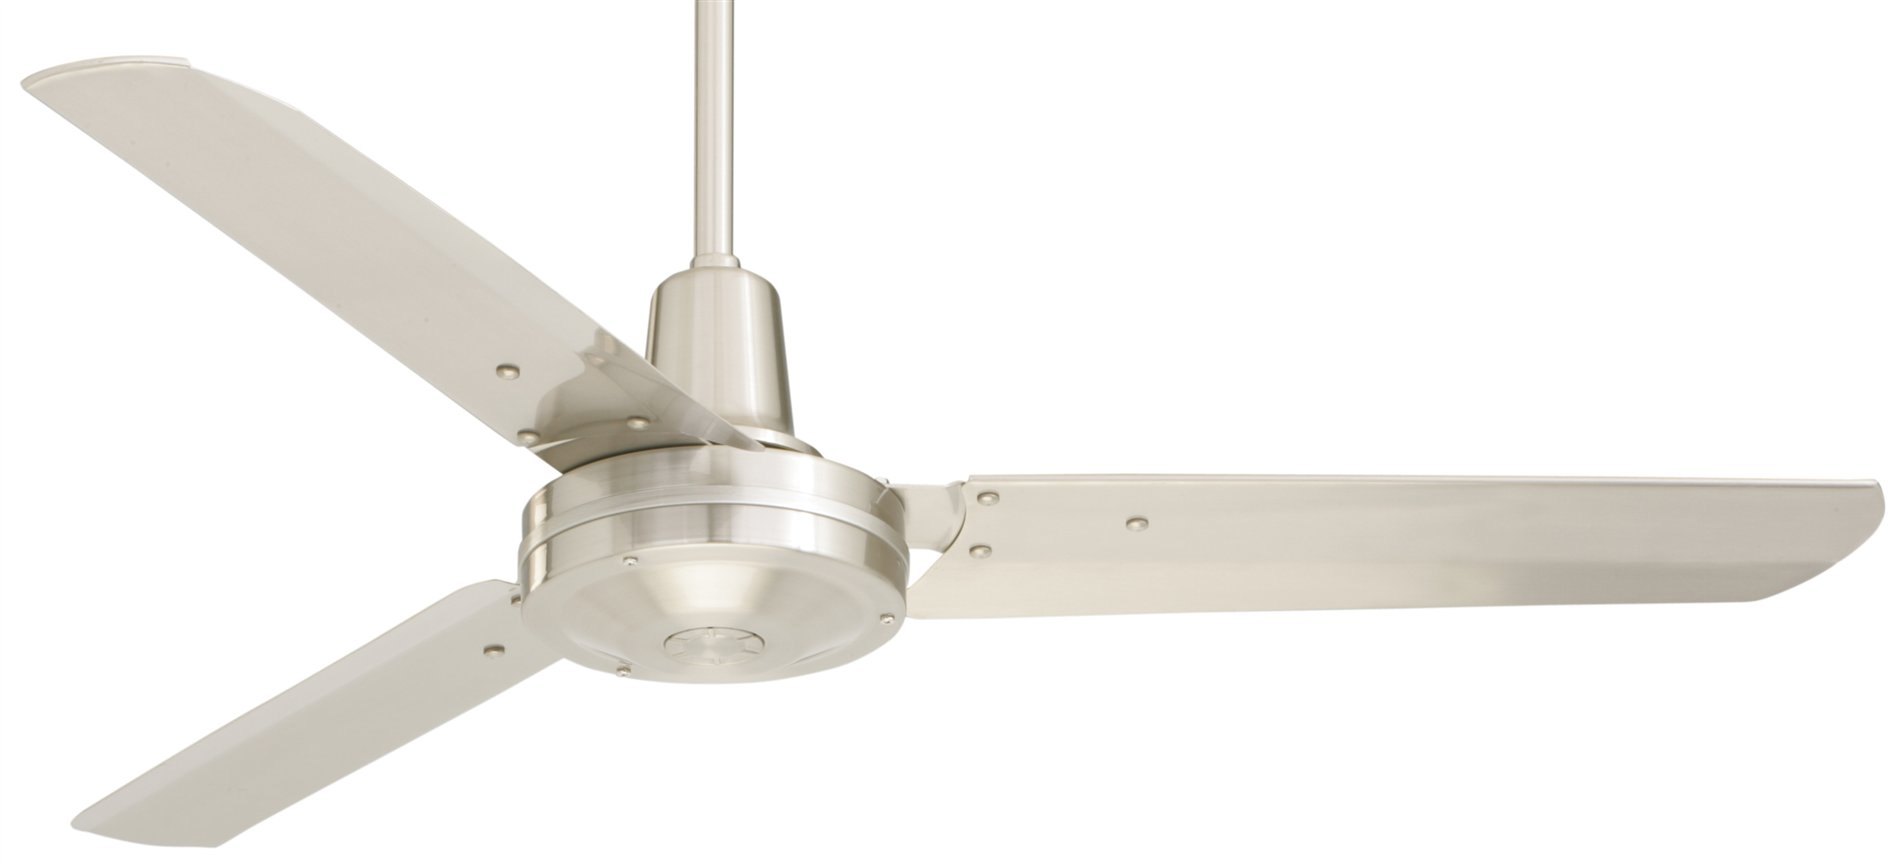 Emerson Hf948 48 Quot Heat Fan Contemporary Industrial Ceiling